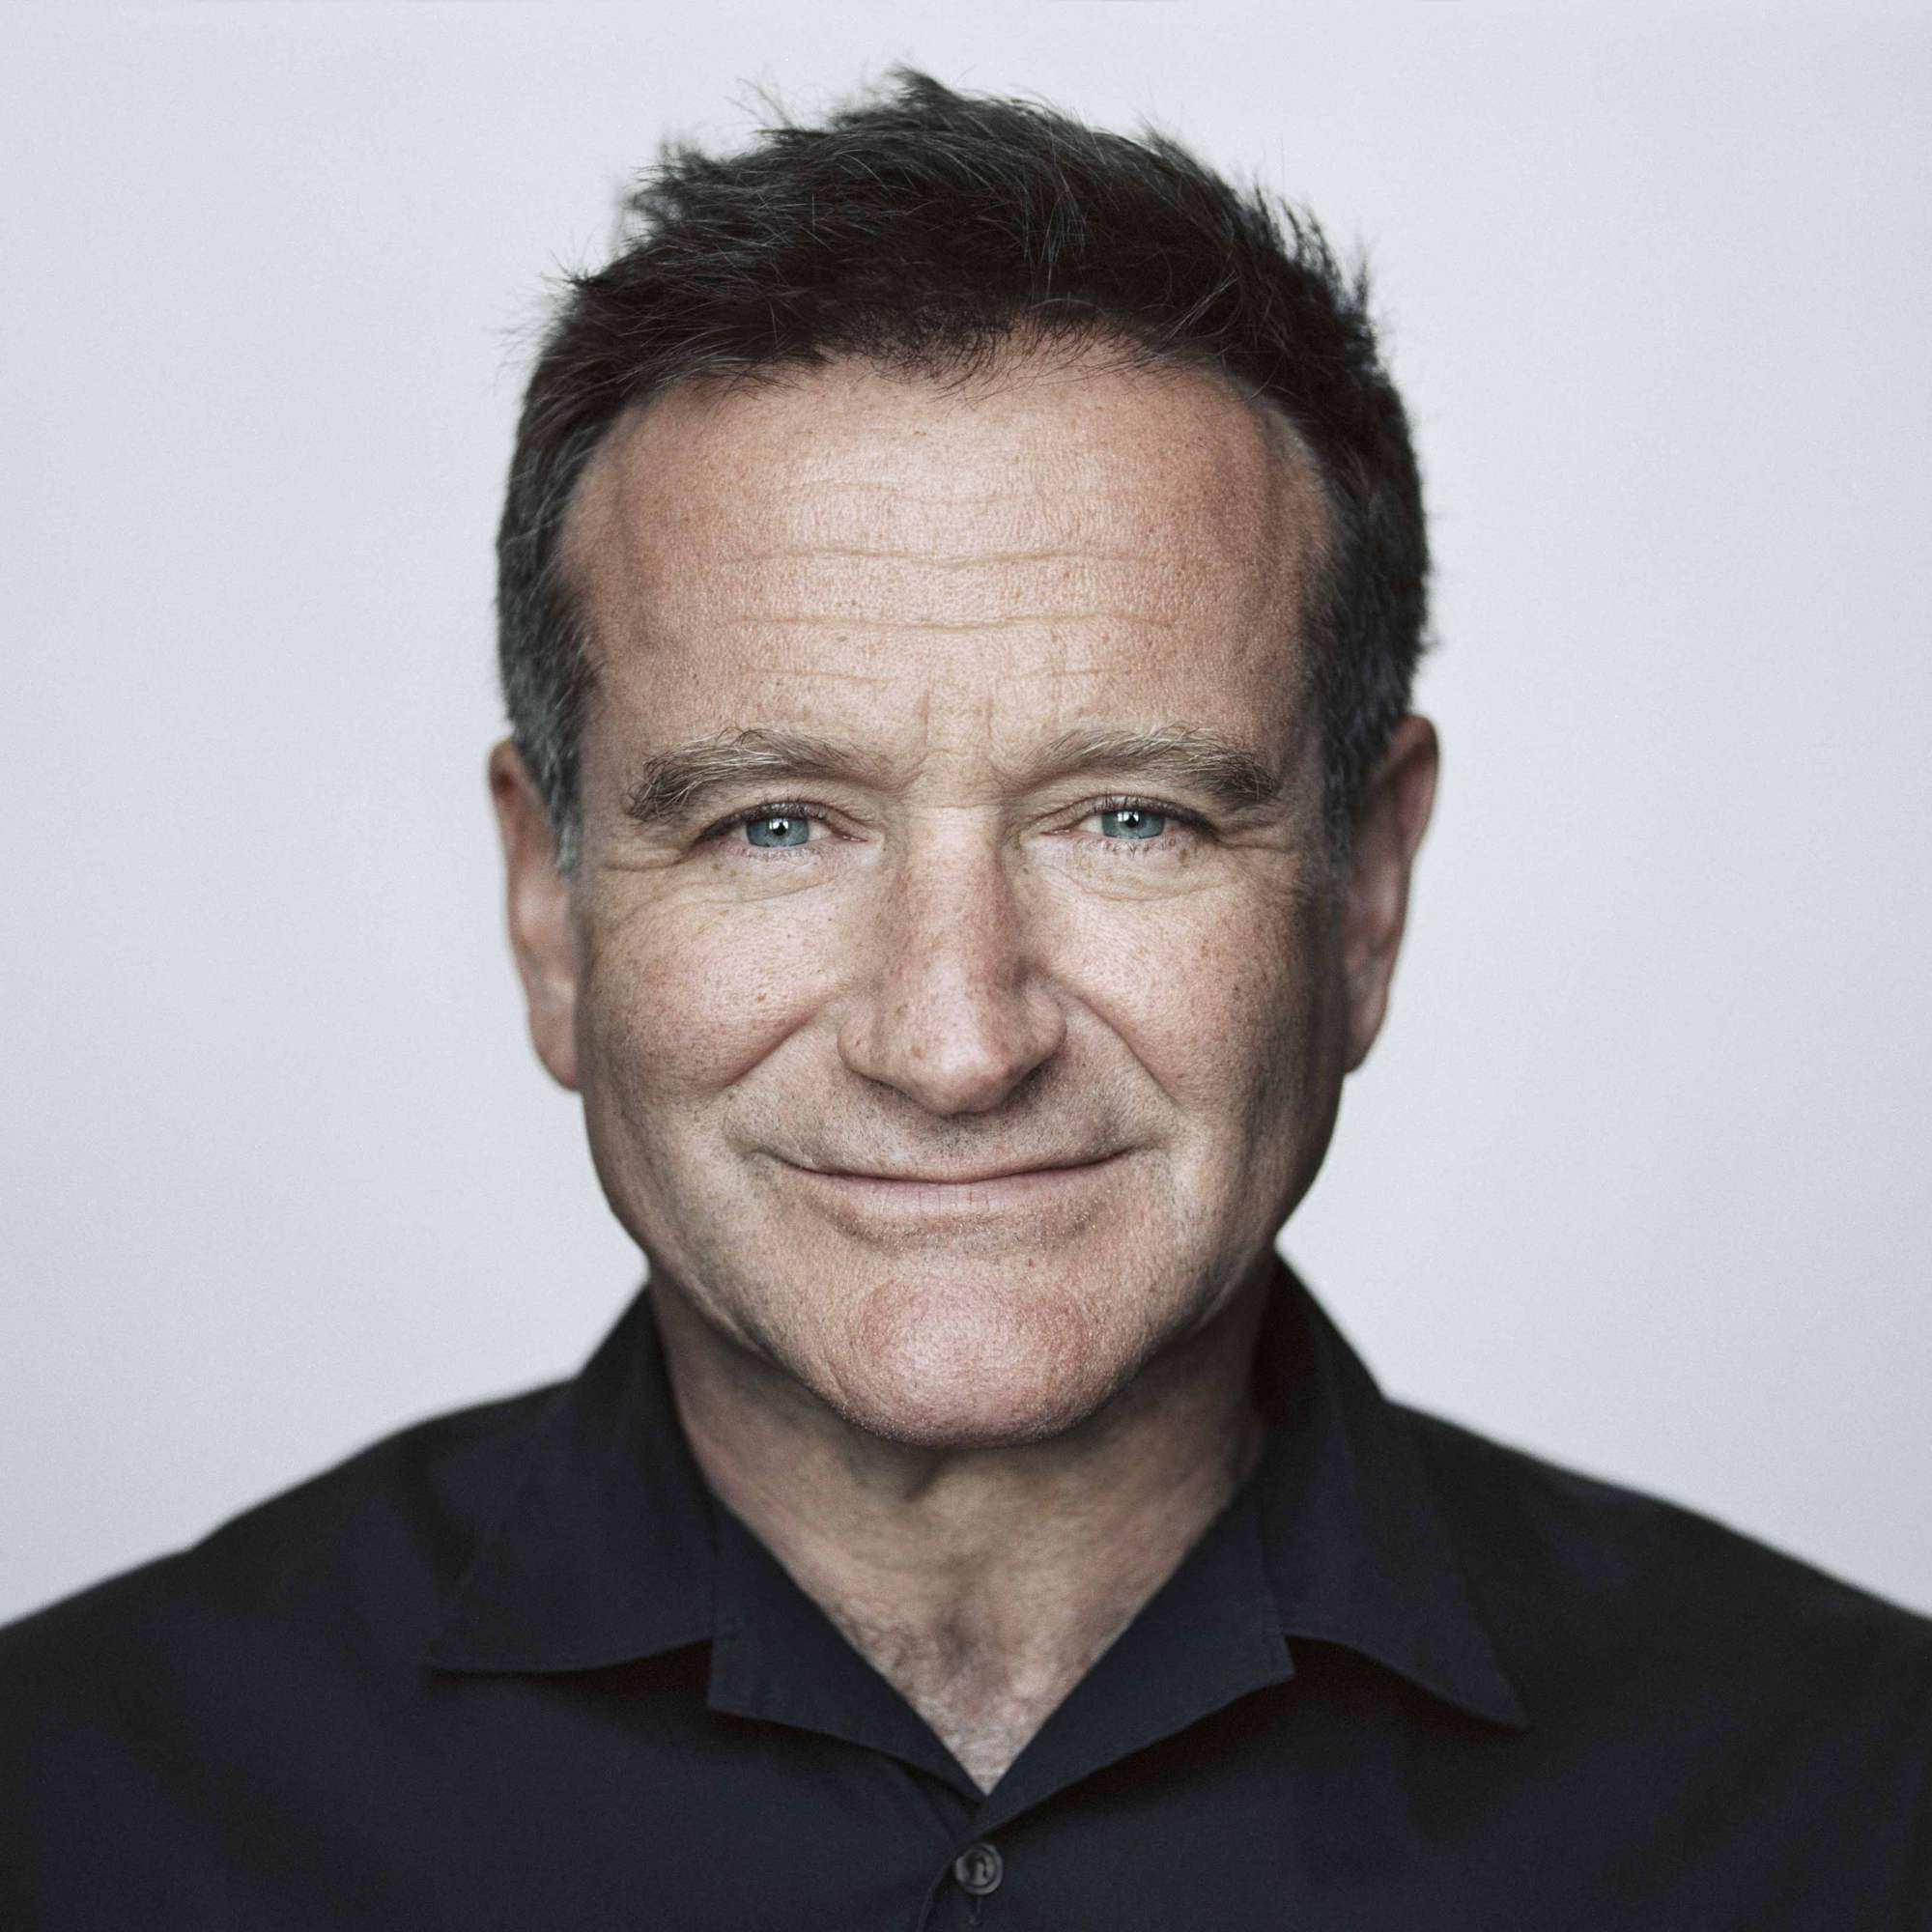 High Quality Robin Williams Wallpaper | Full HD Pictures